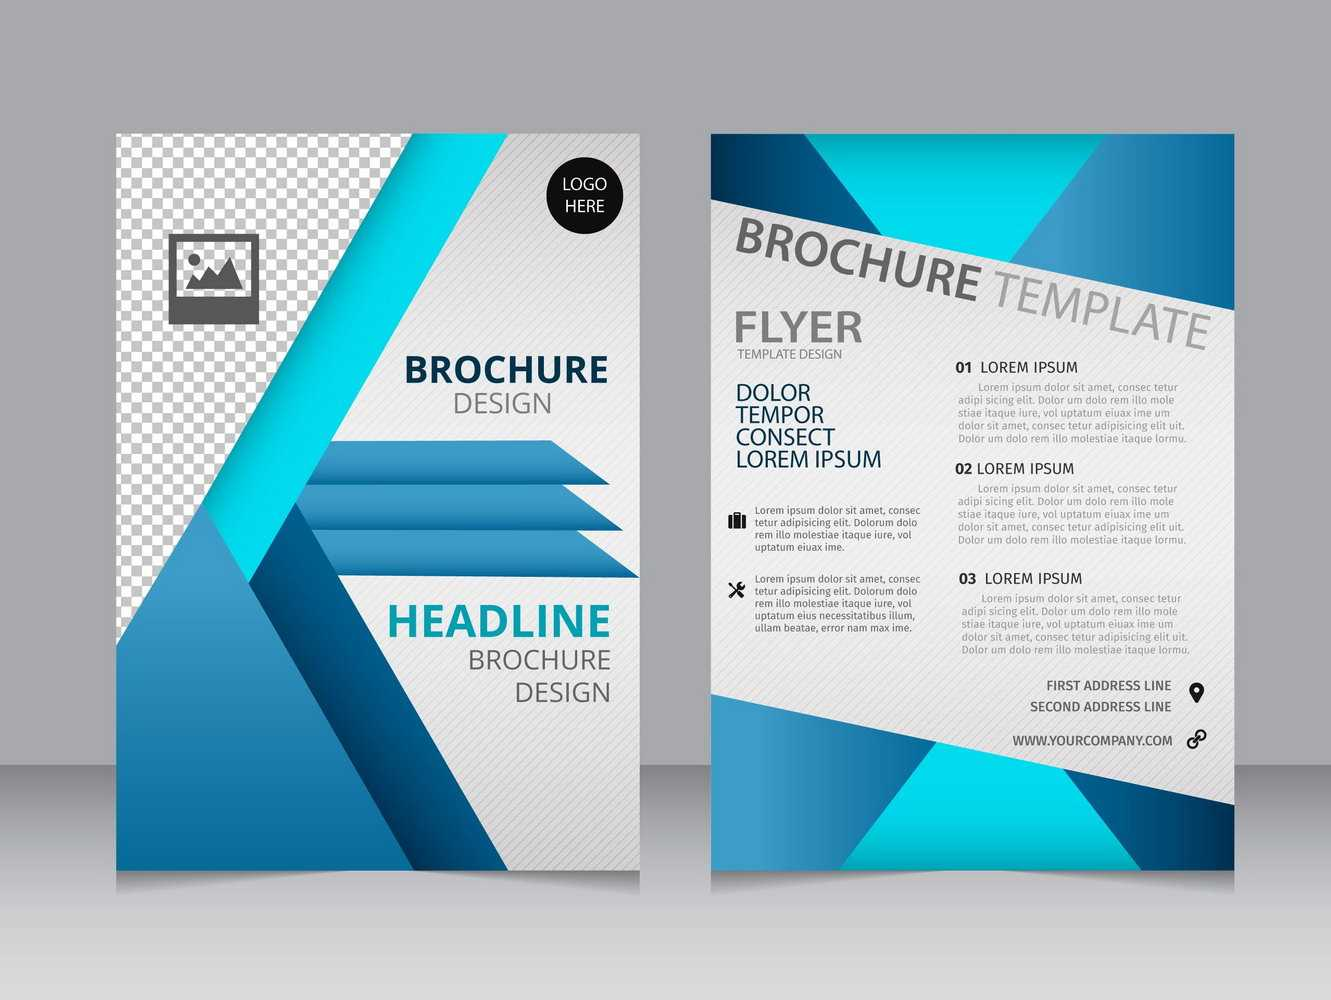 007 Blank Brochure Templates Free Download Word Template Throughout Free Illustrator Brochure Templates Download